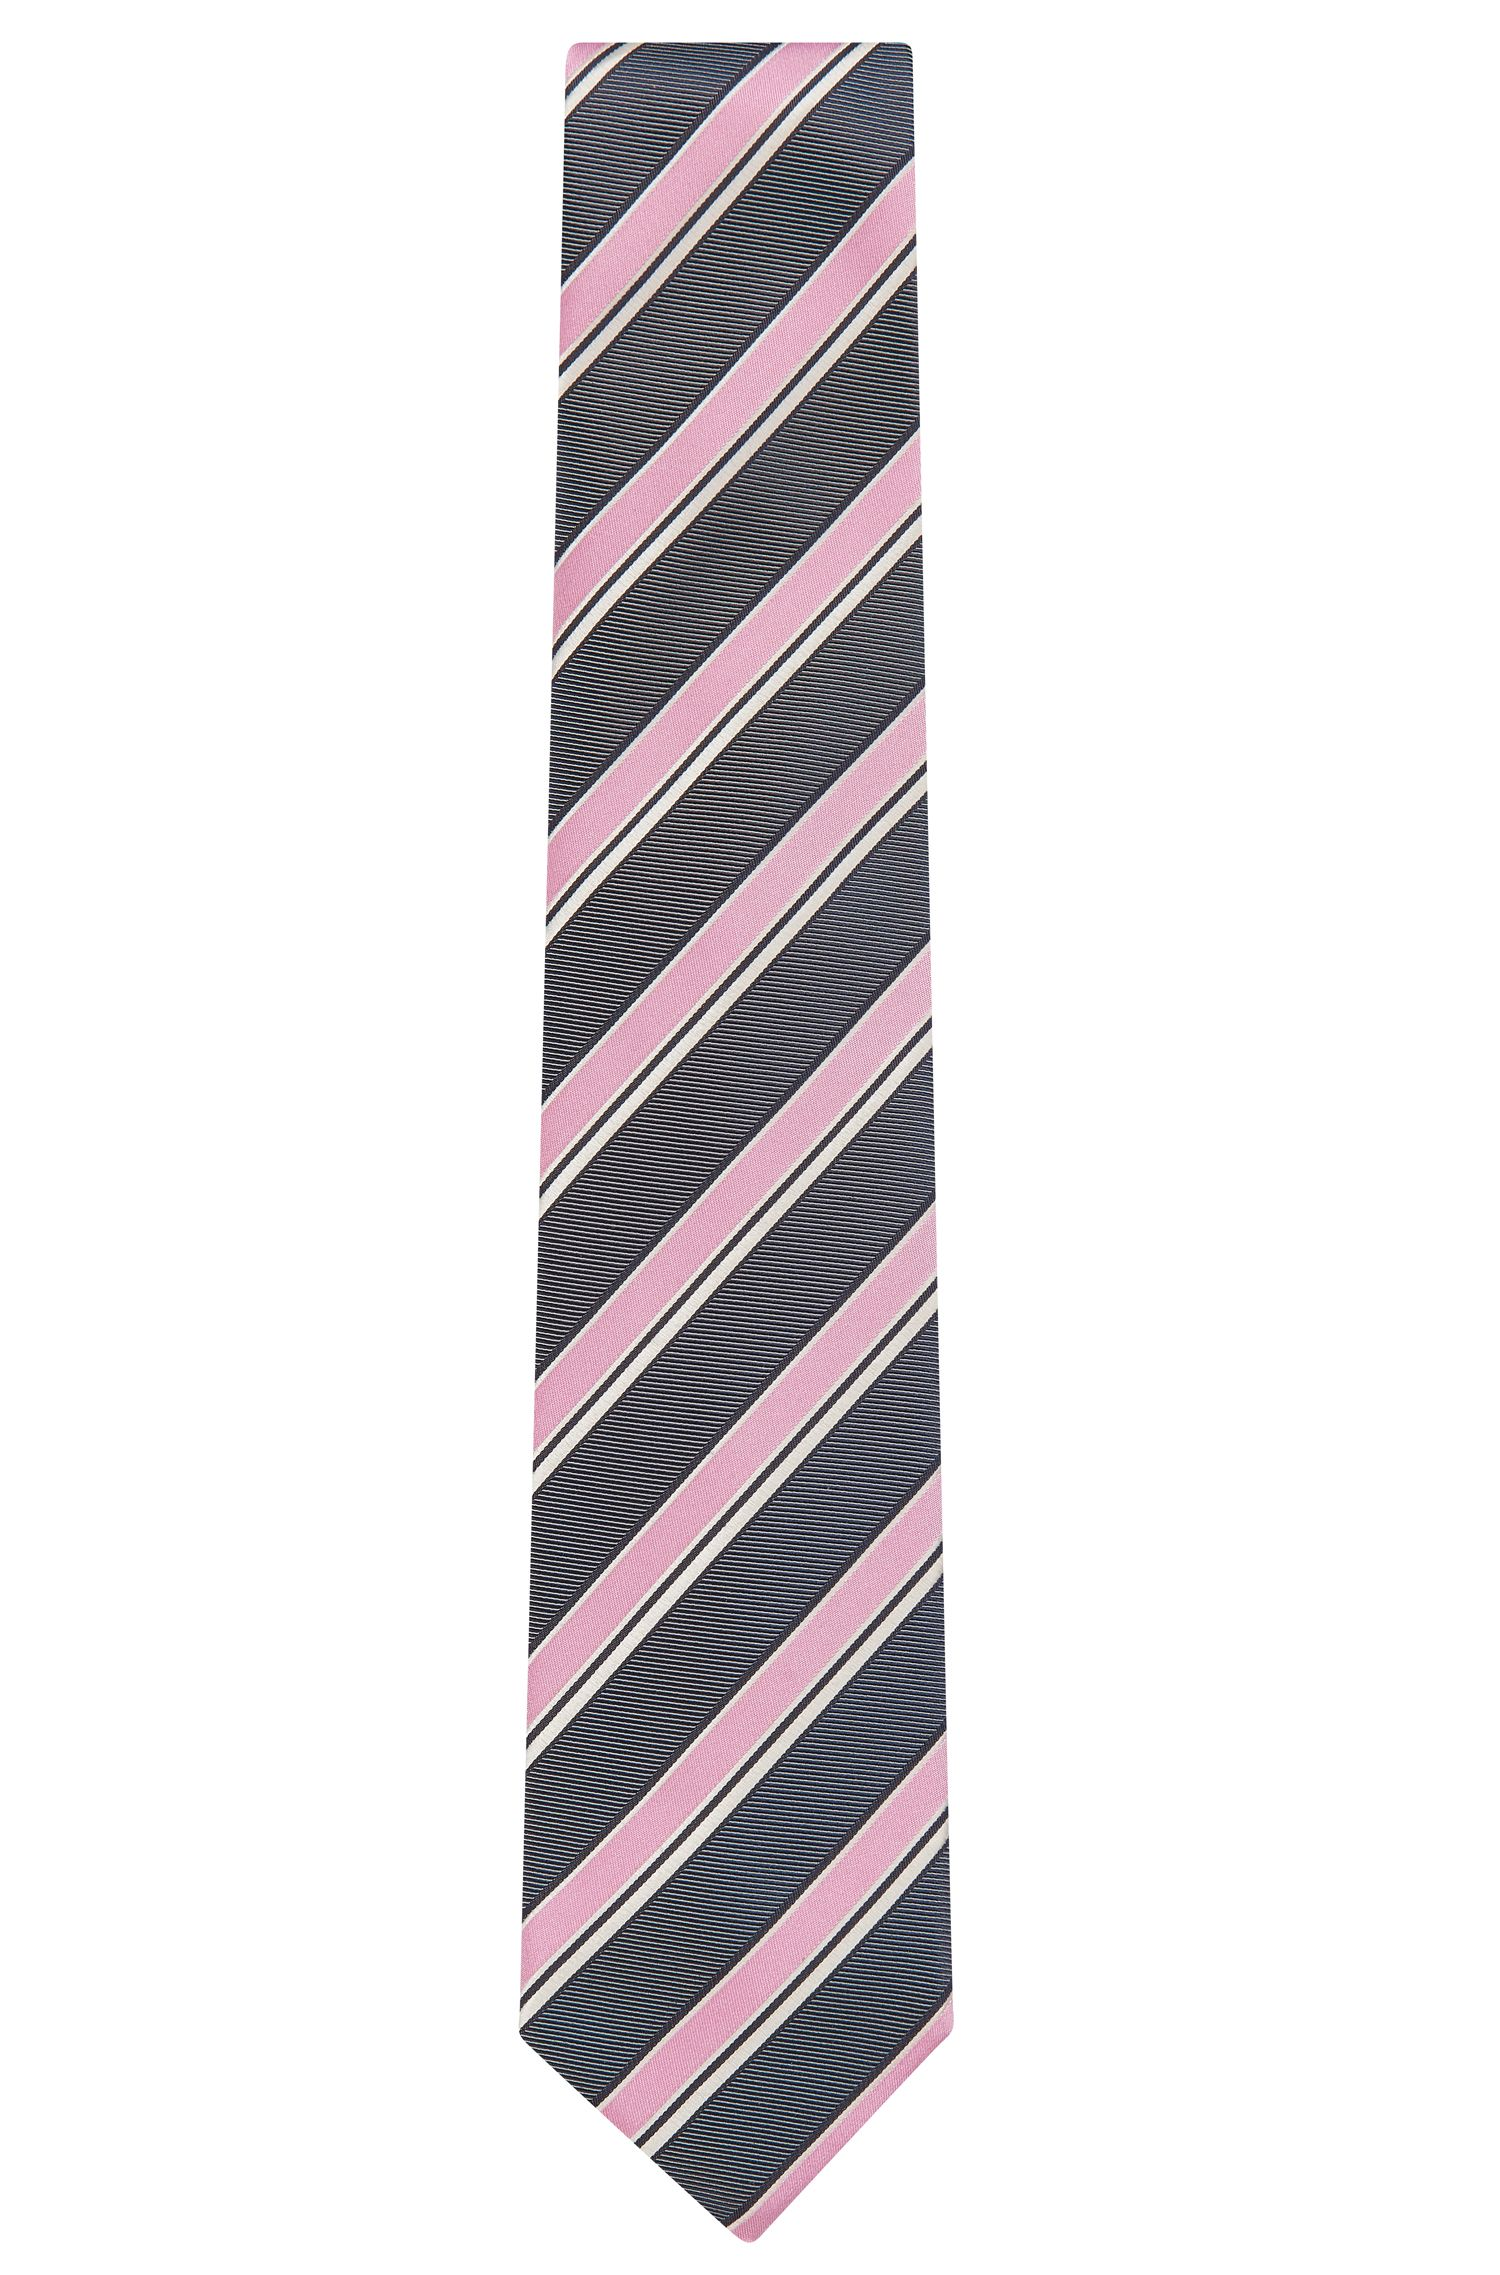 Silk Tie, Regular | Tie 7.5 cm, light pink